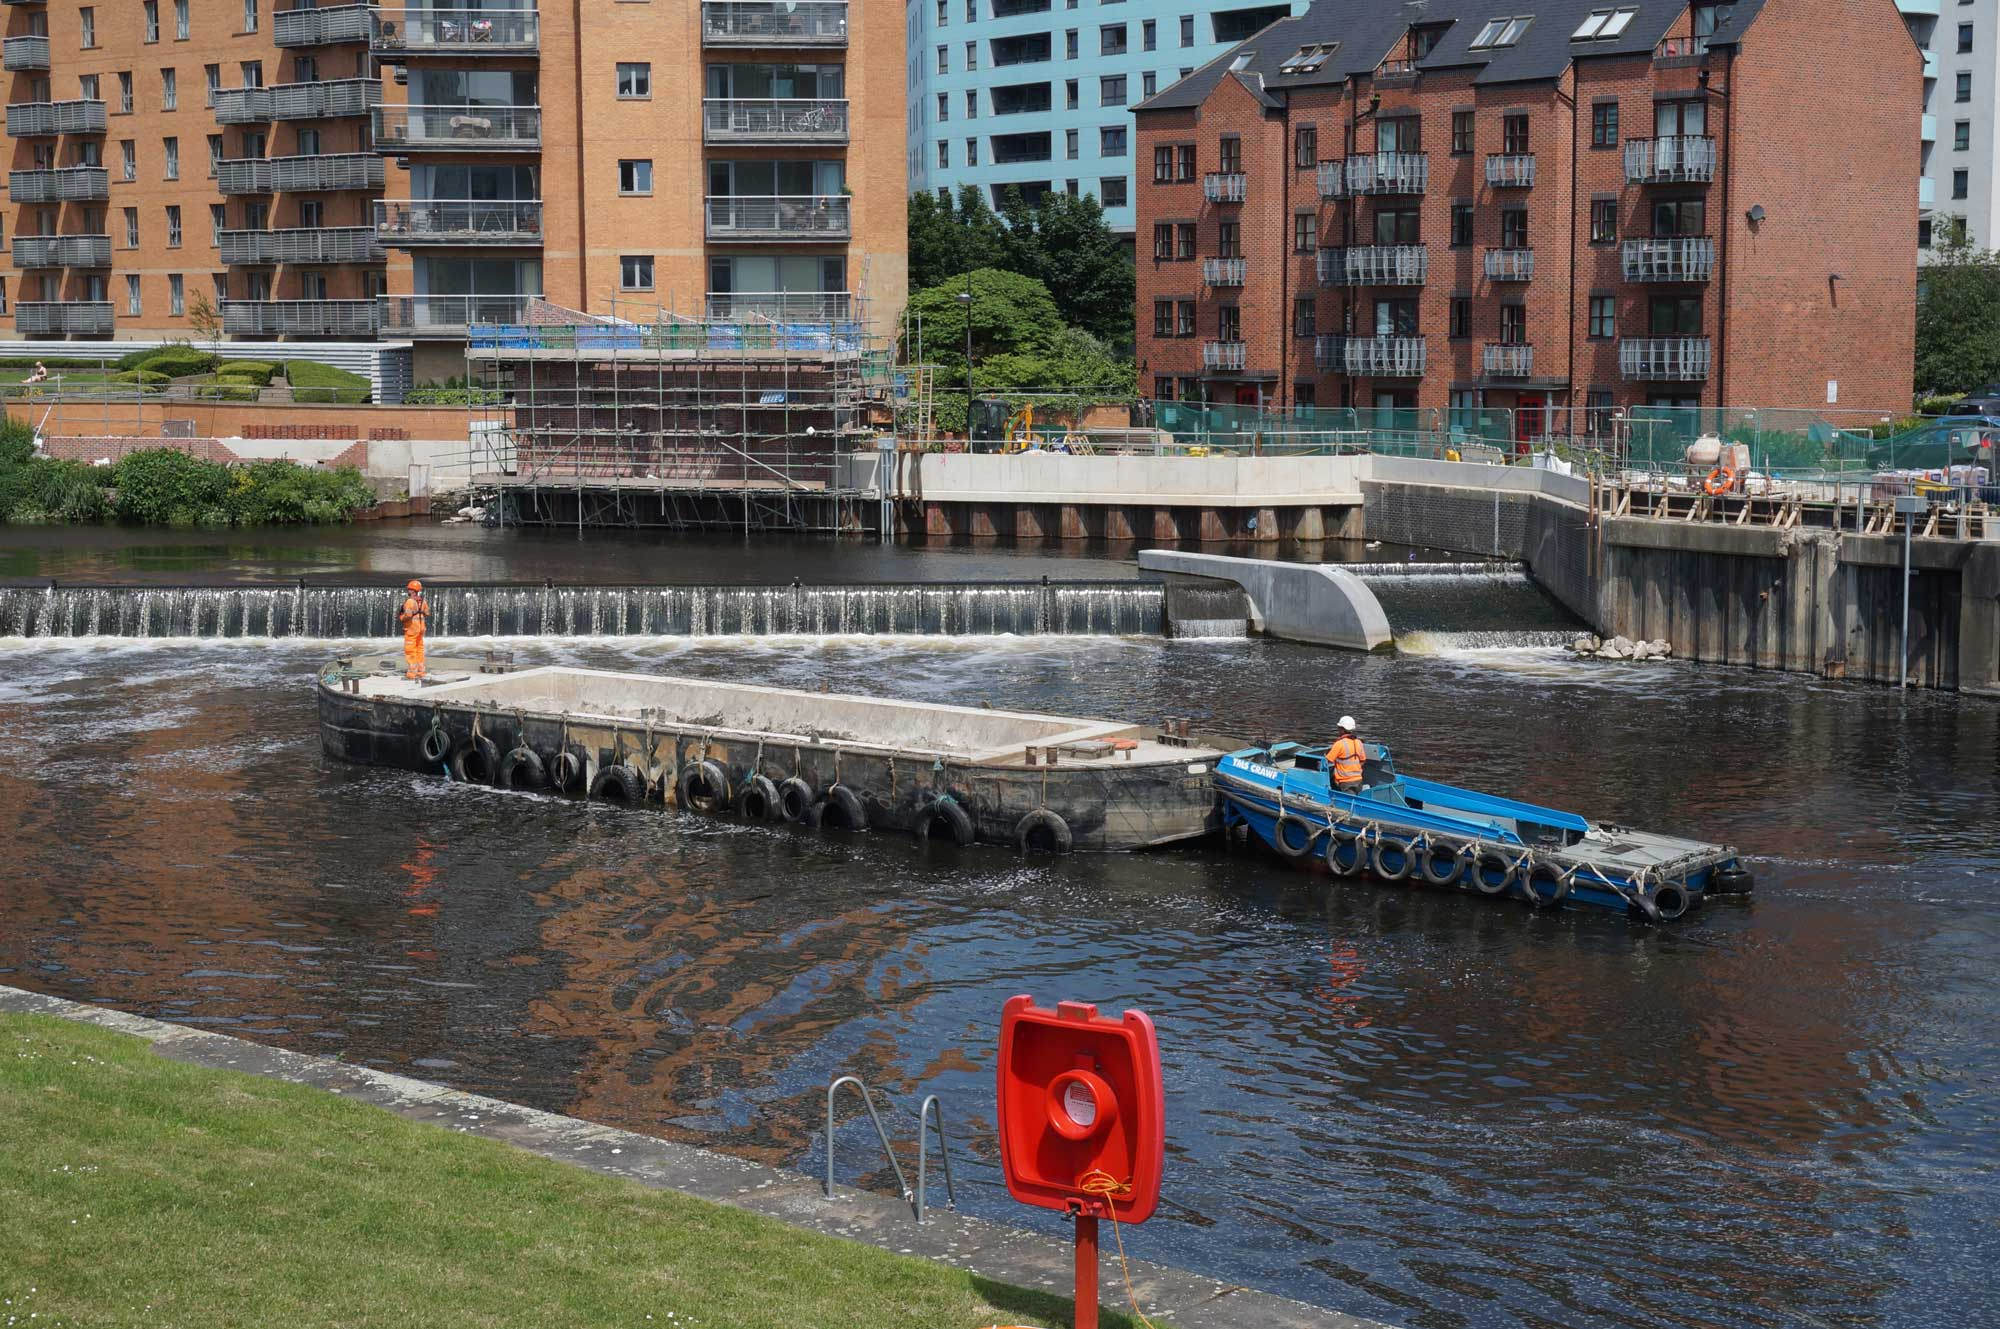 Leeds flood Alleviation Scheme